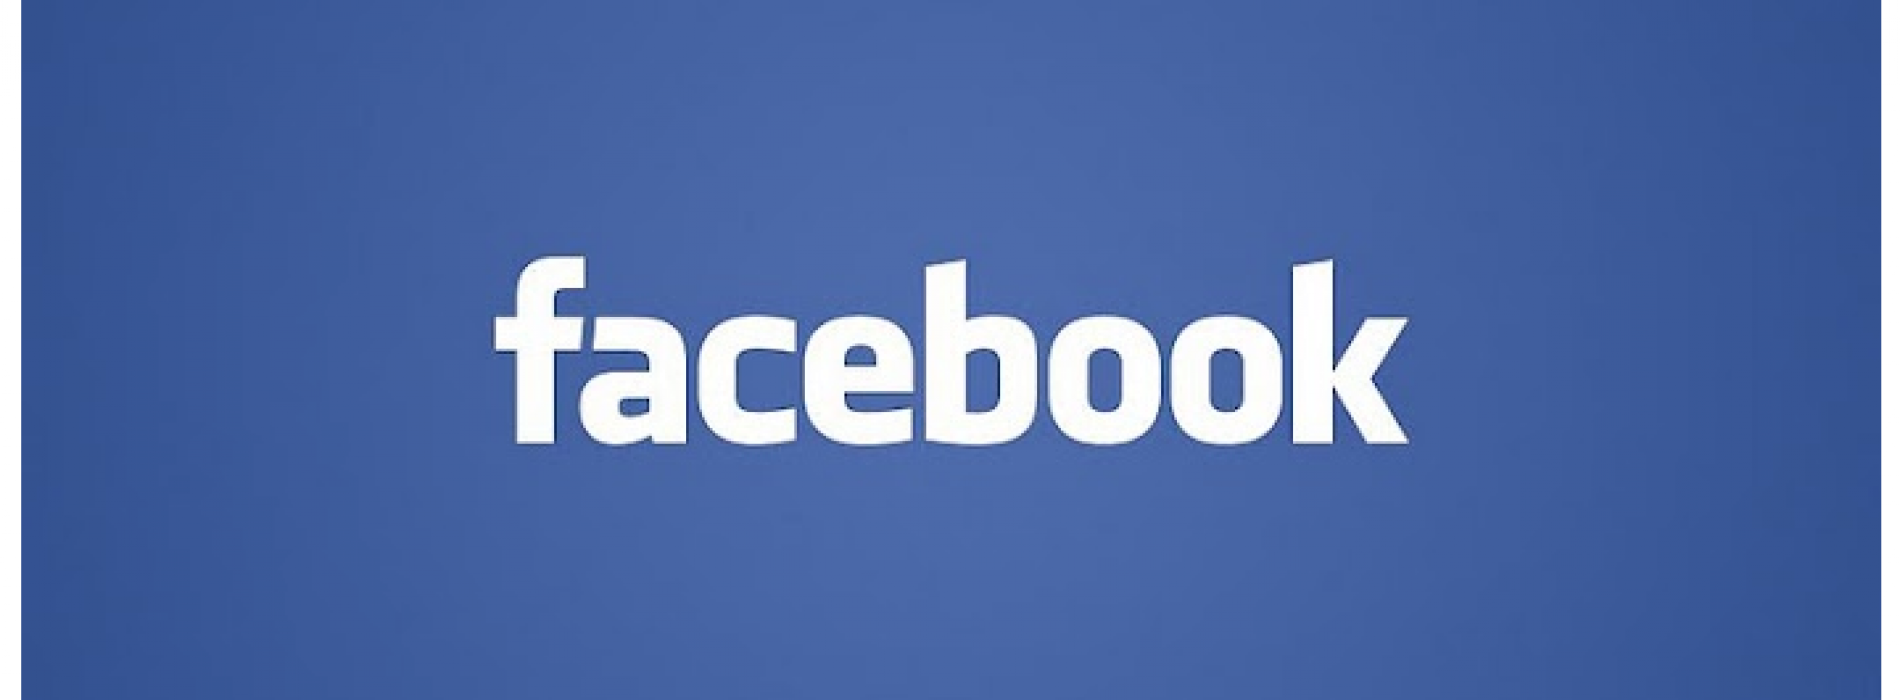 Facebook 2.0 Android app brings the speed